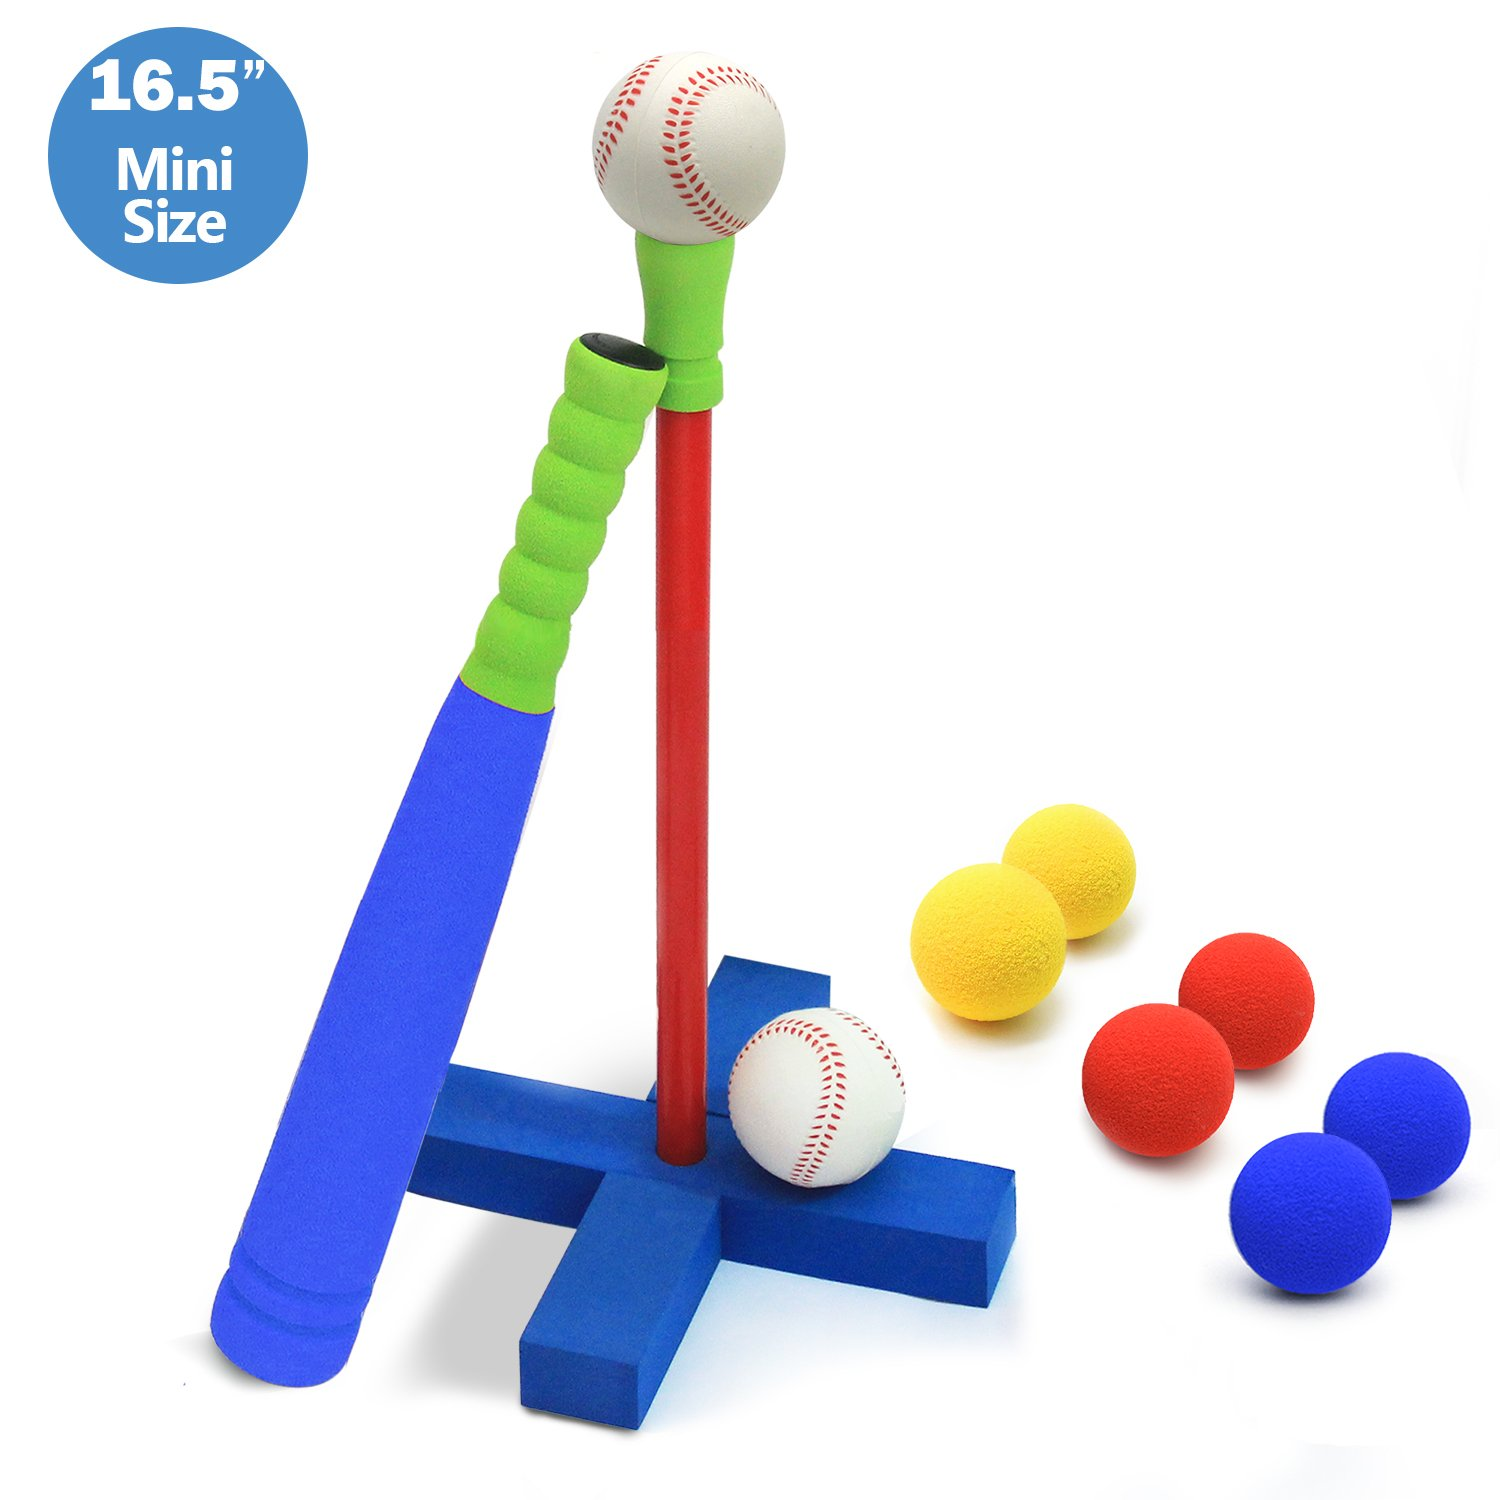 CELEMOON [Mini Size] Upgraded 16.5 inch Kids Foam T Ball Baseball Set Toy for Toddlers, 8 Different Colored Balls Included + Carry/Organize Bag, for Kids Over 1 Years Old by CeleMoon